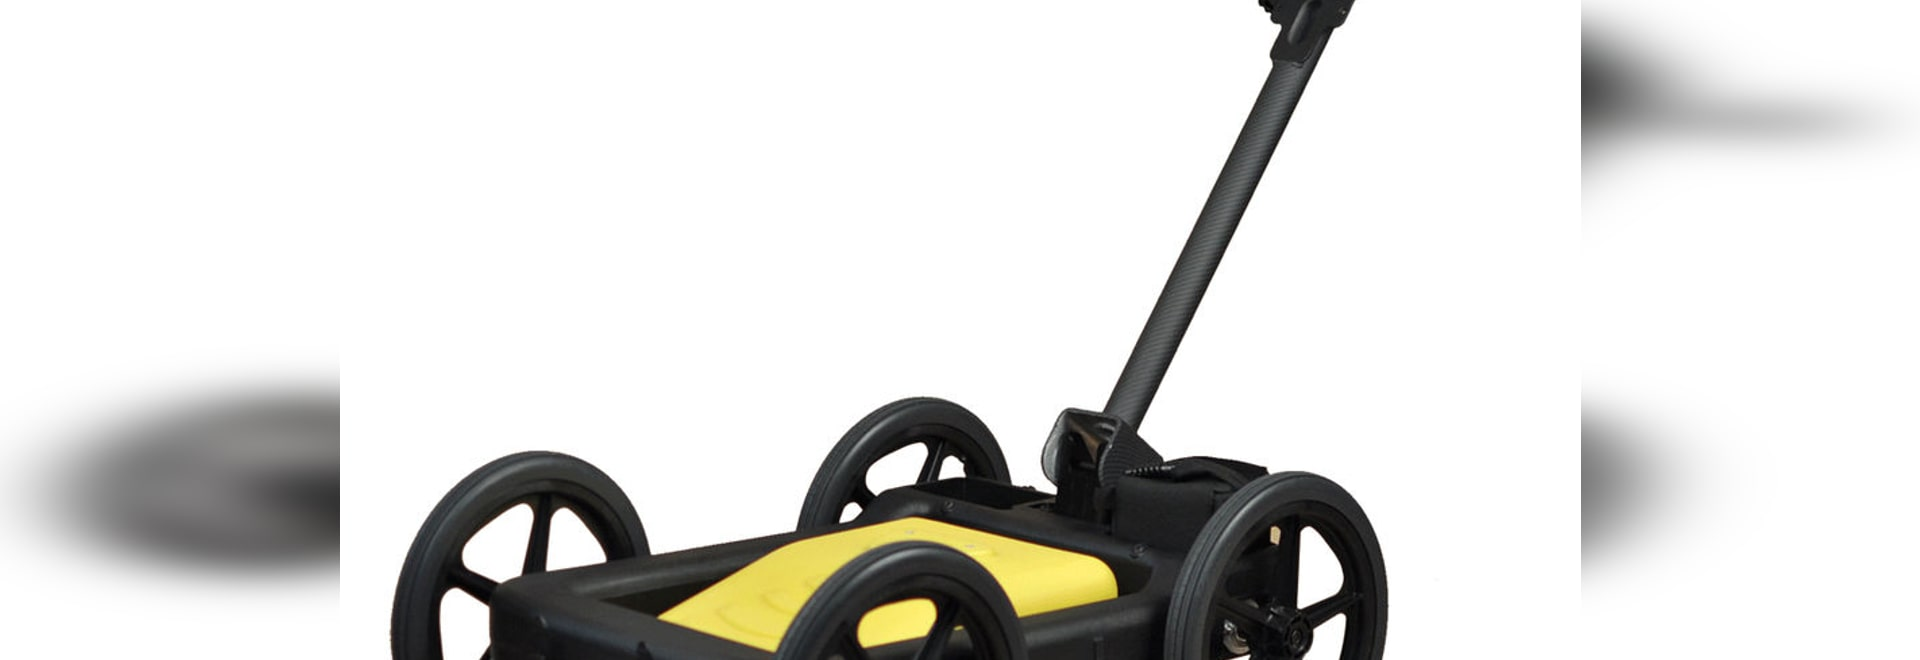 NEW: tri-frequency ground penetrating radar by Sub-Surface